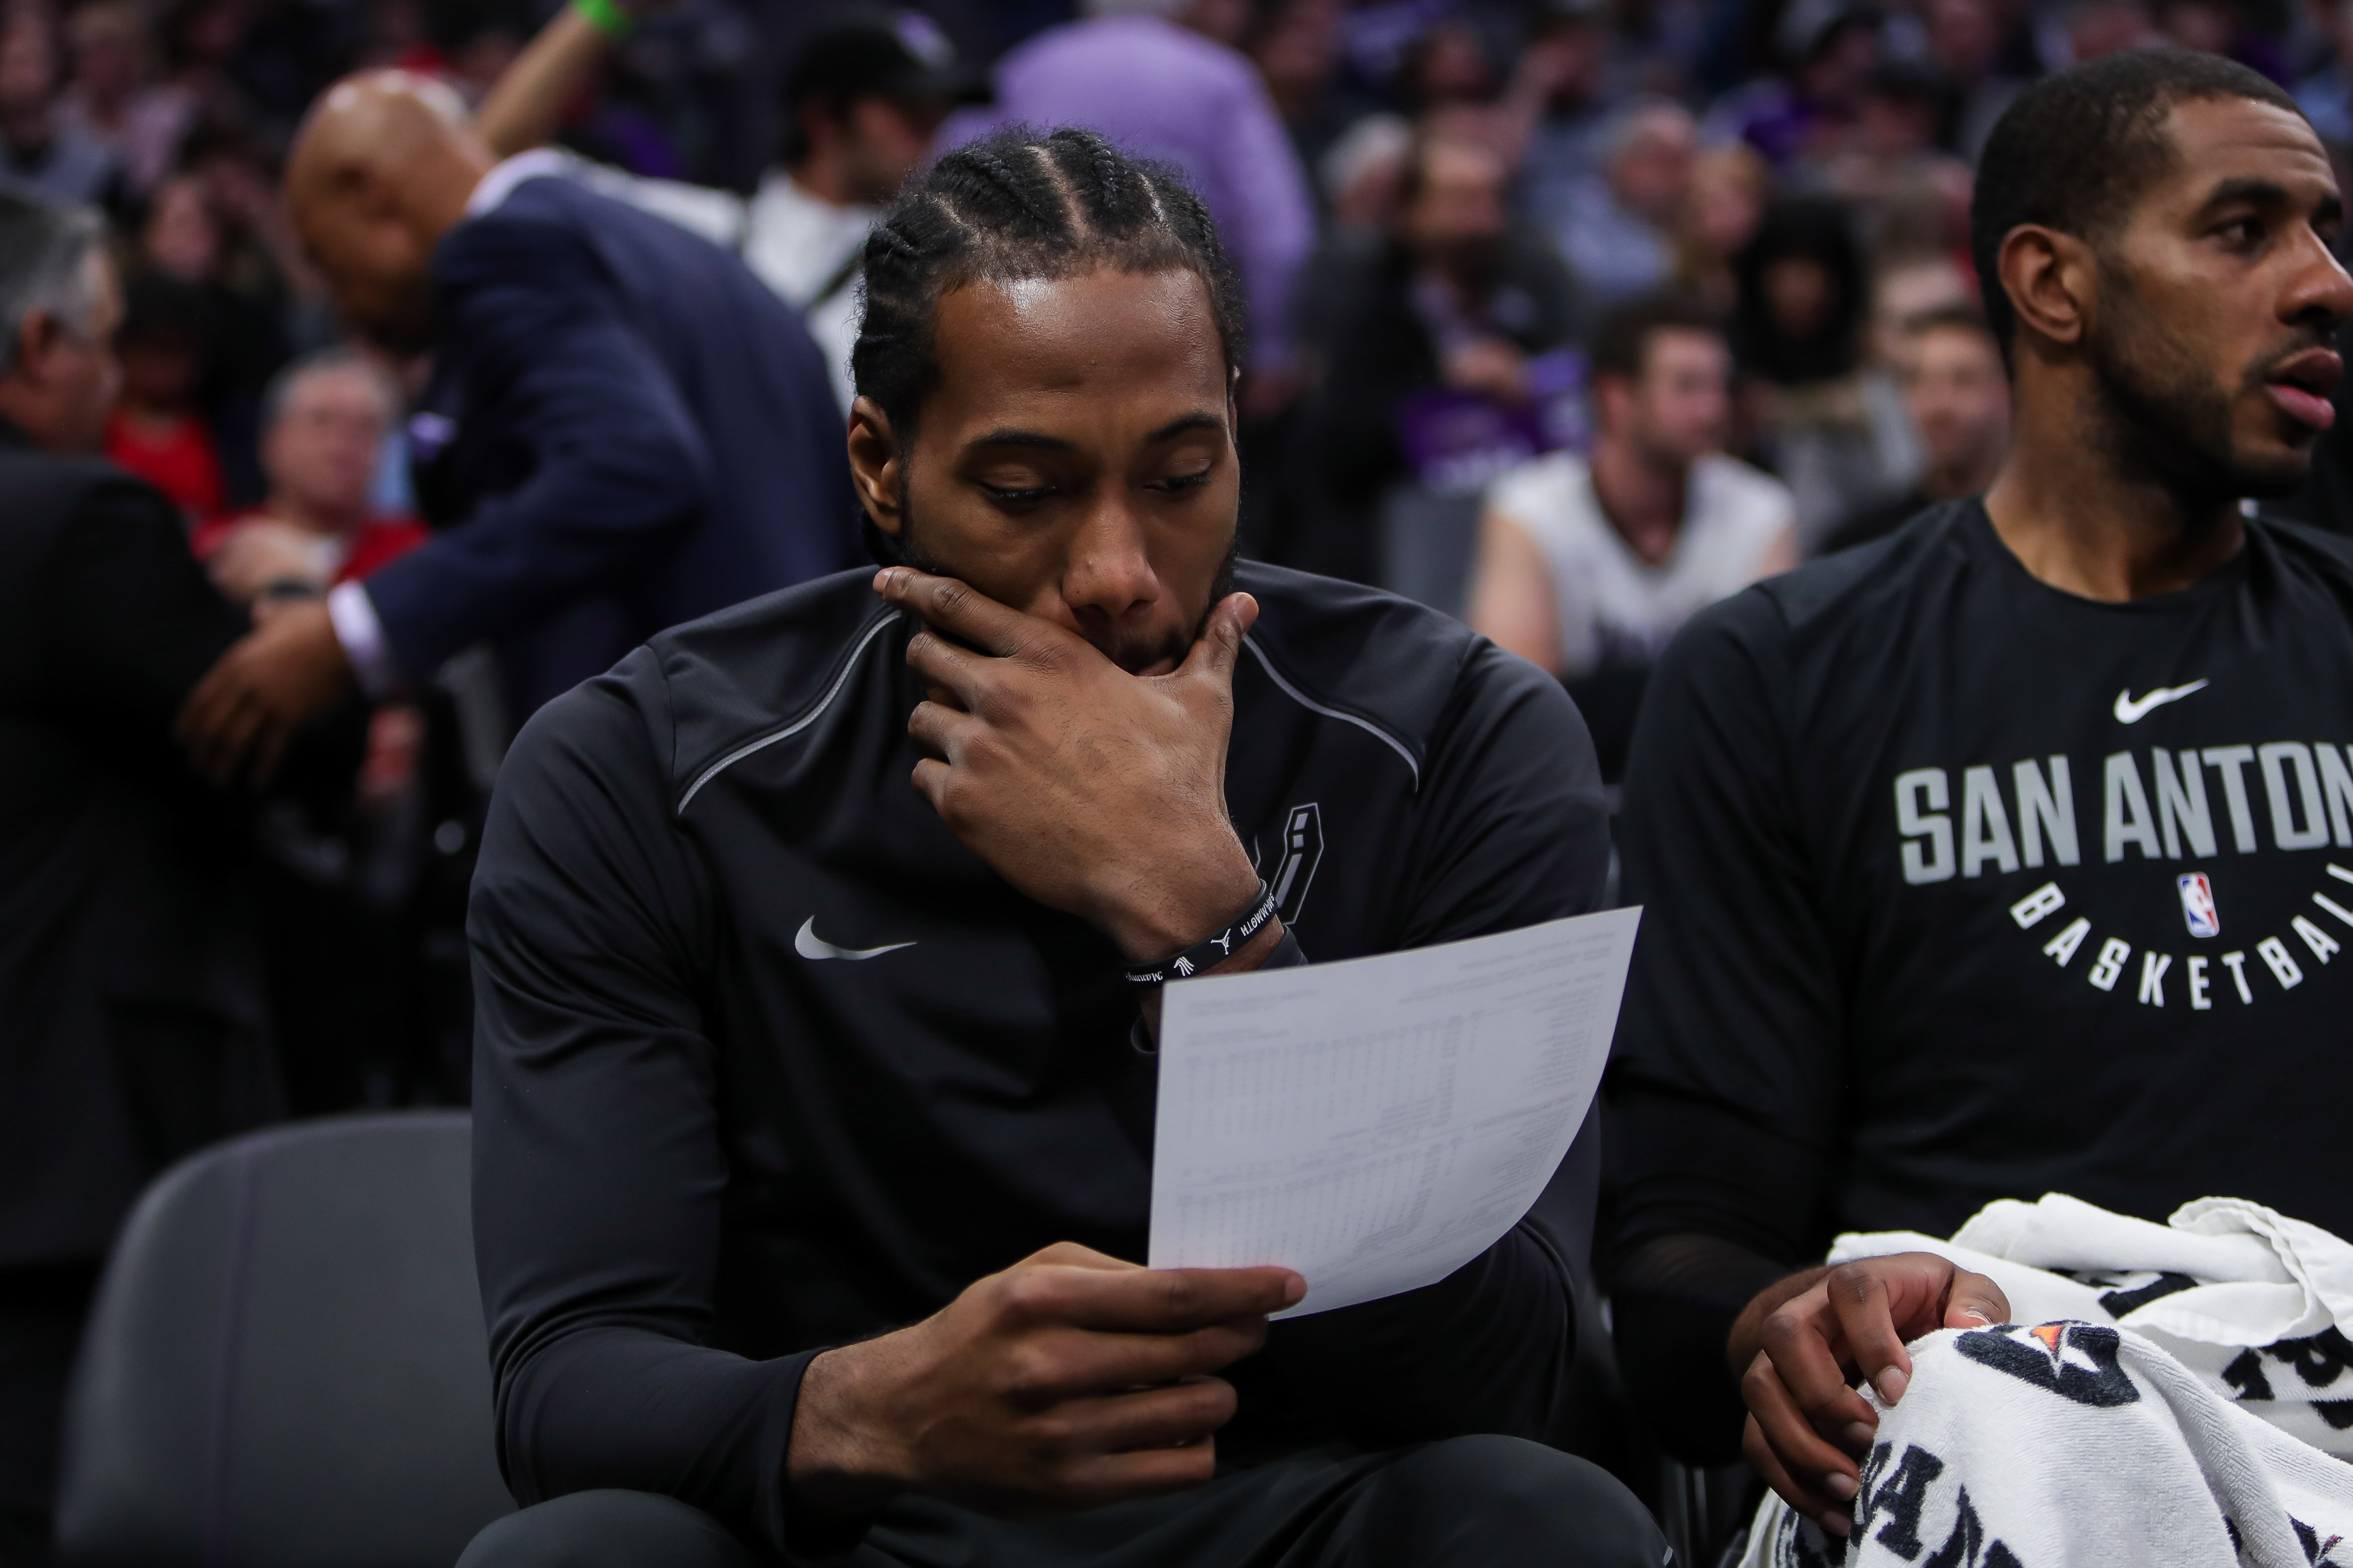 Kawhi Leonard's rehab timeline causing rift between him and Spurs, per report